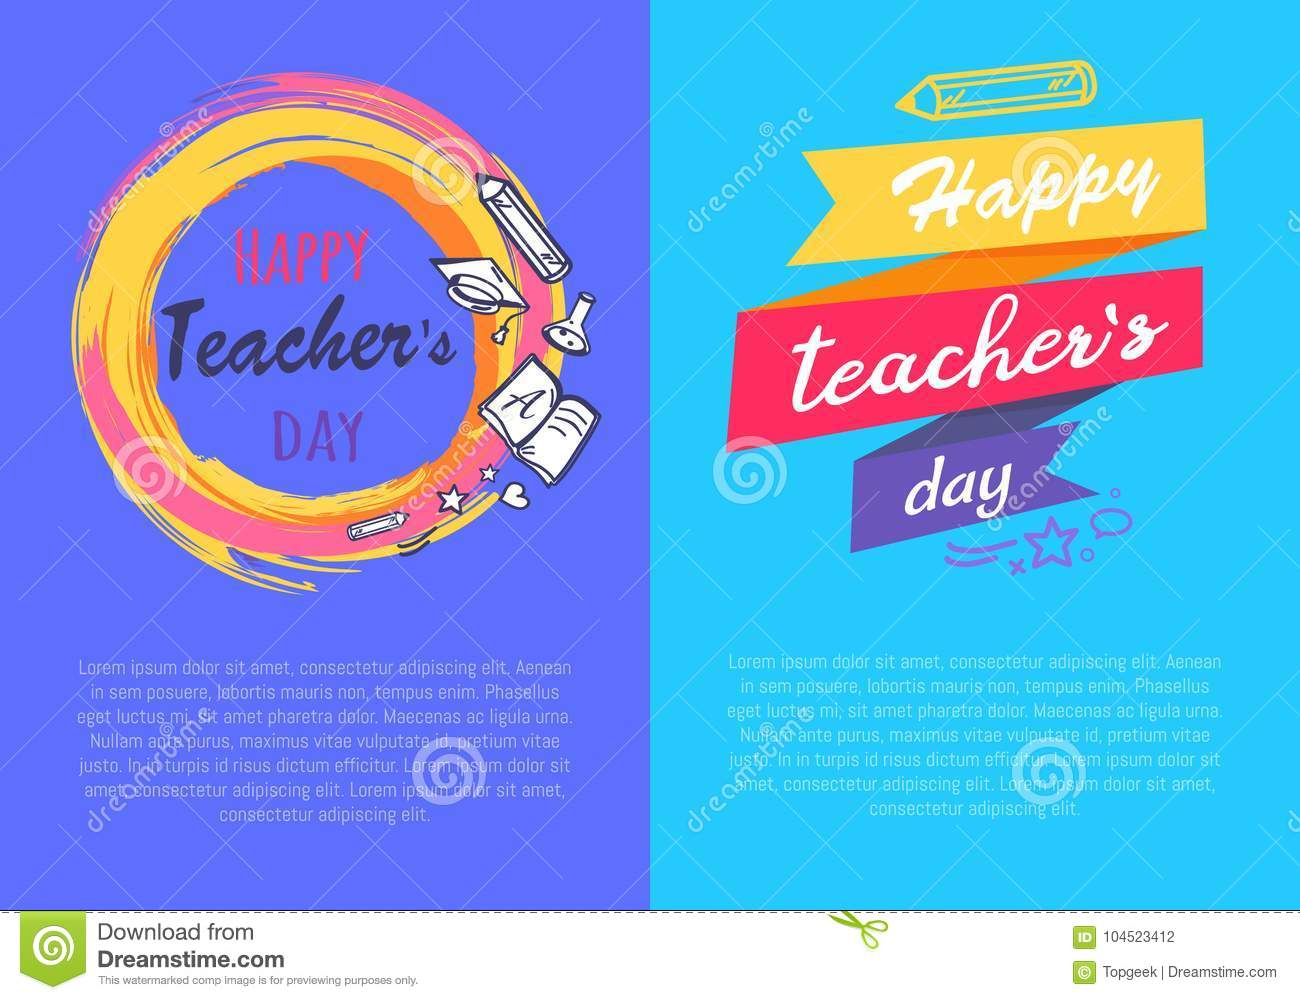 Happy Teachers Day Set of Two Vector Illustration